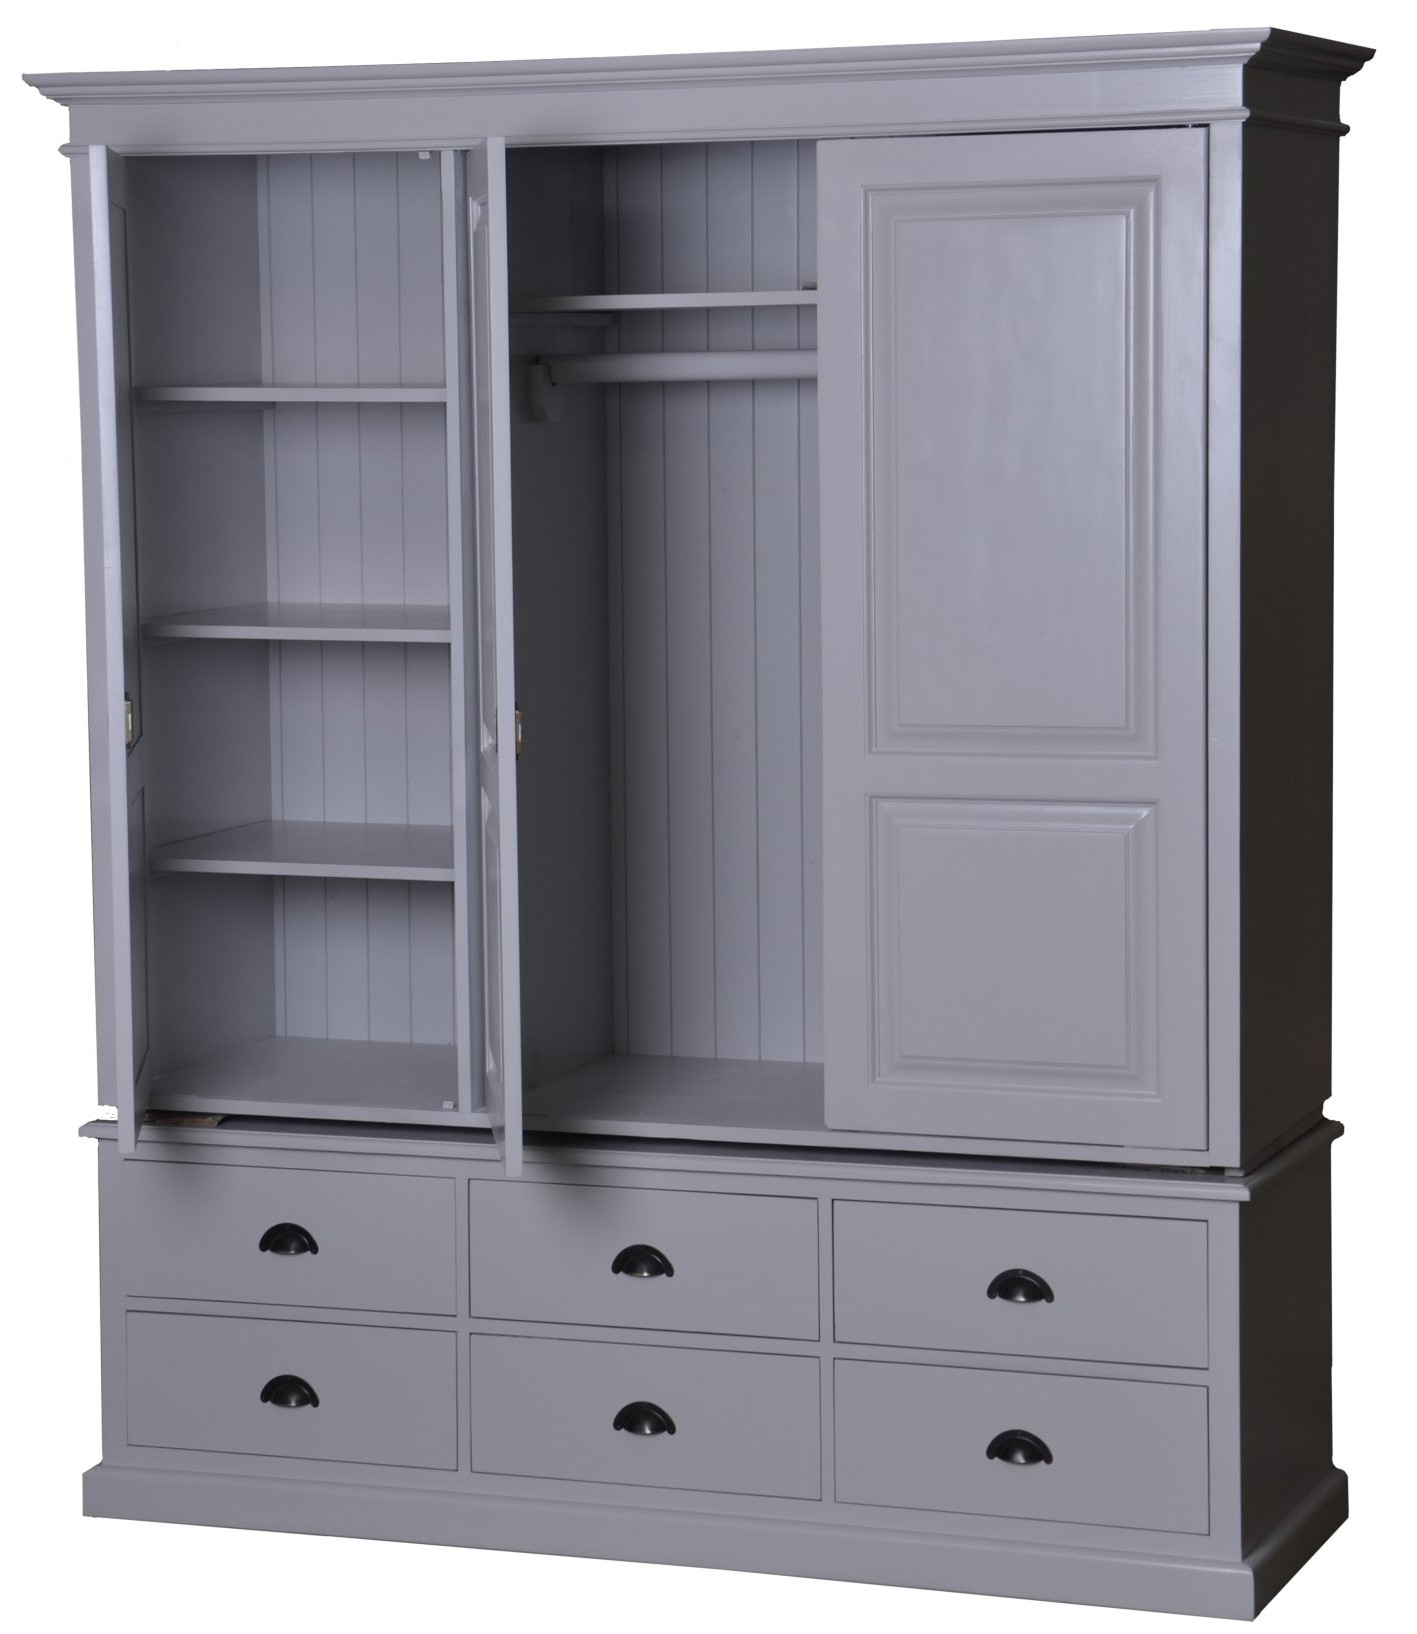 armoire fer great meuble industriel vintage dedans meuble metal industriel occasion amandiks. Black Bedroom Furniture Sets. Home Design Ideas